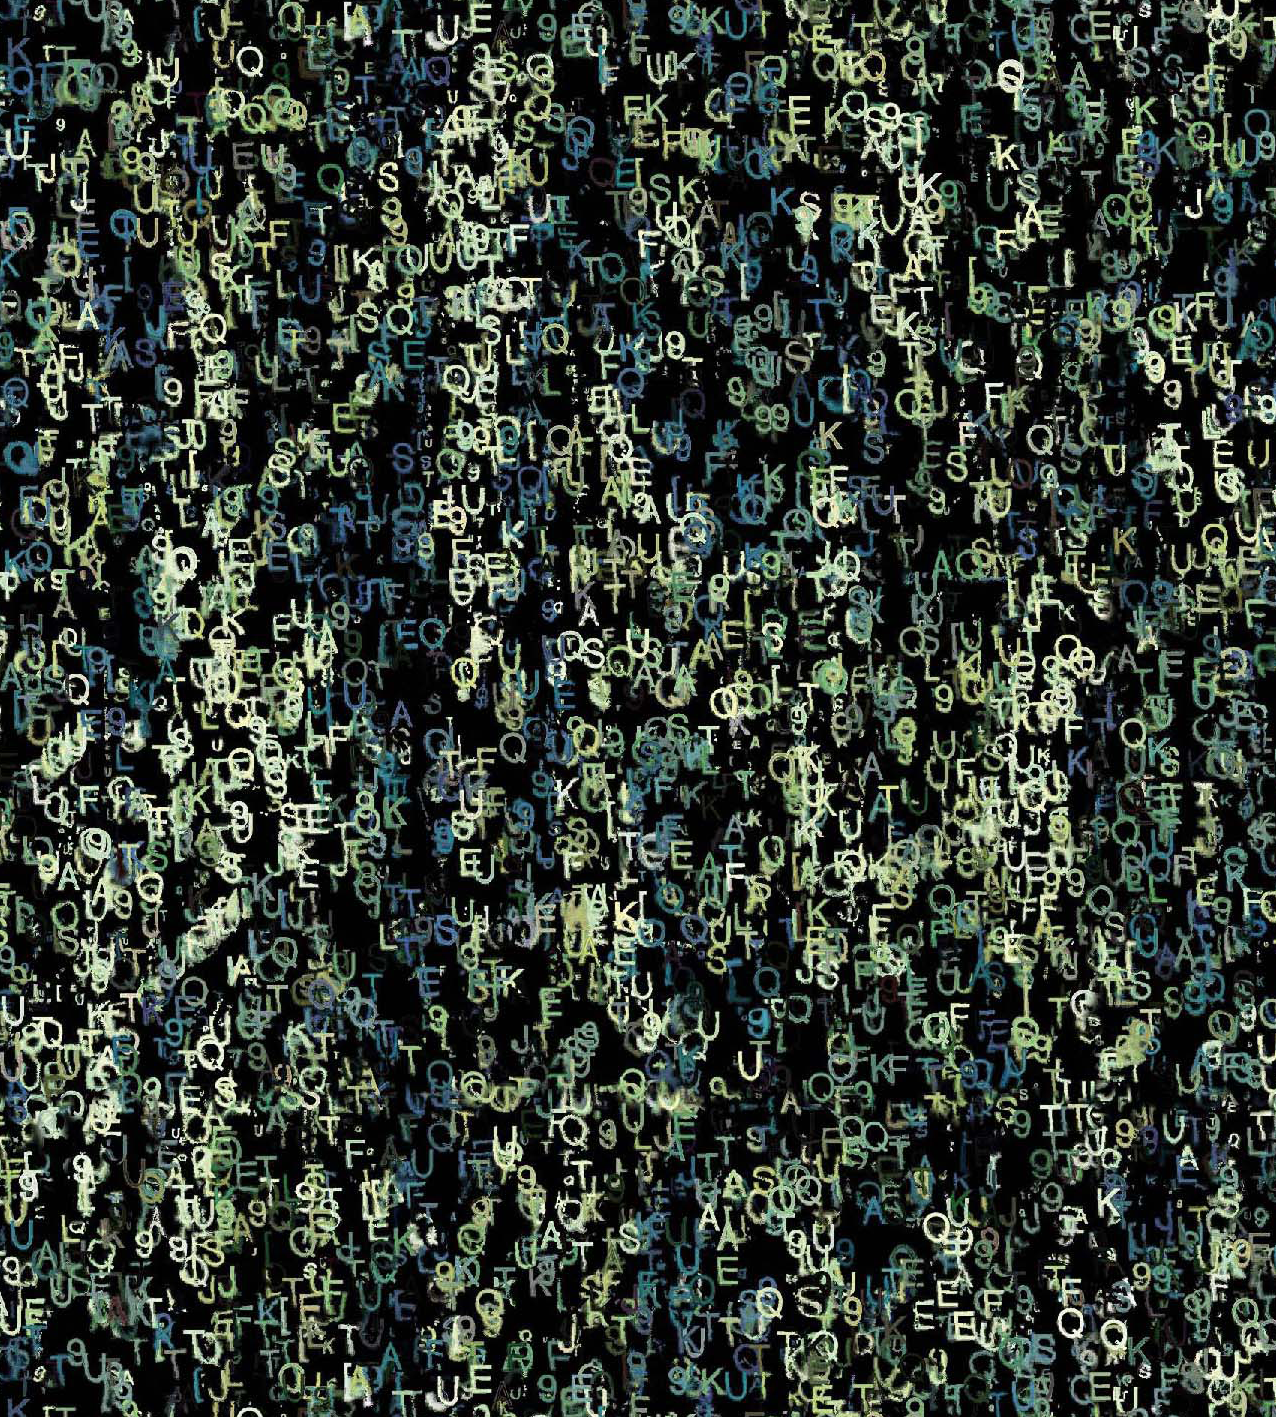 46 - ABSTRACT CAMOUFLAGE TEXTURES VOL.1